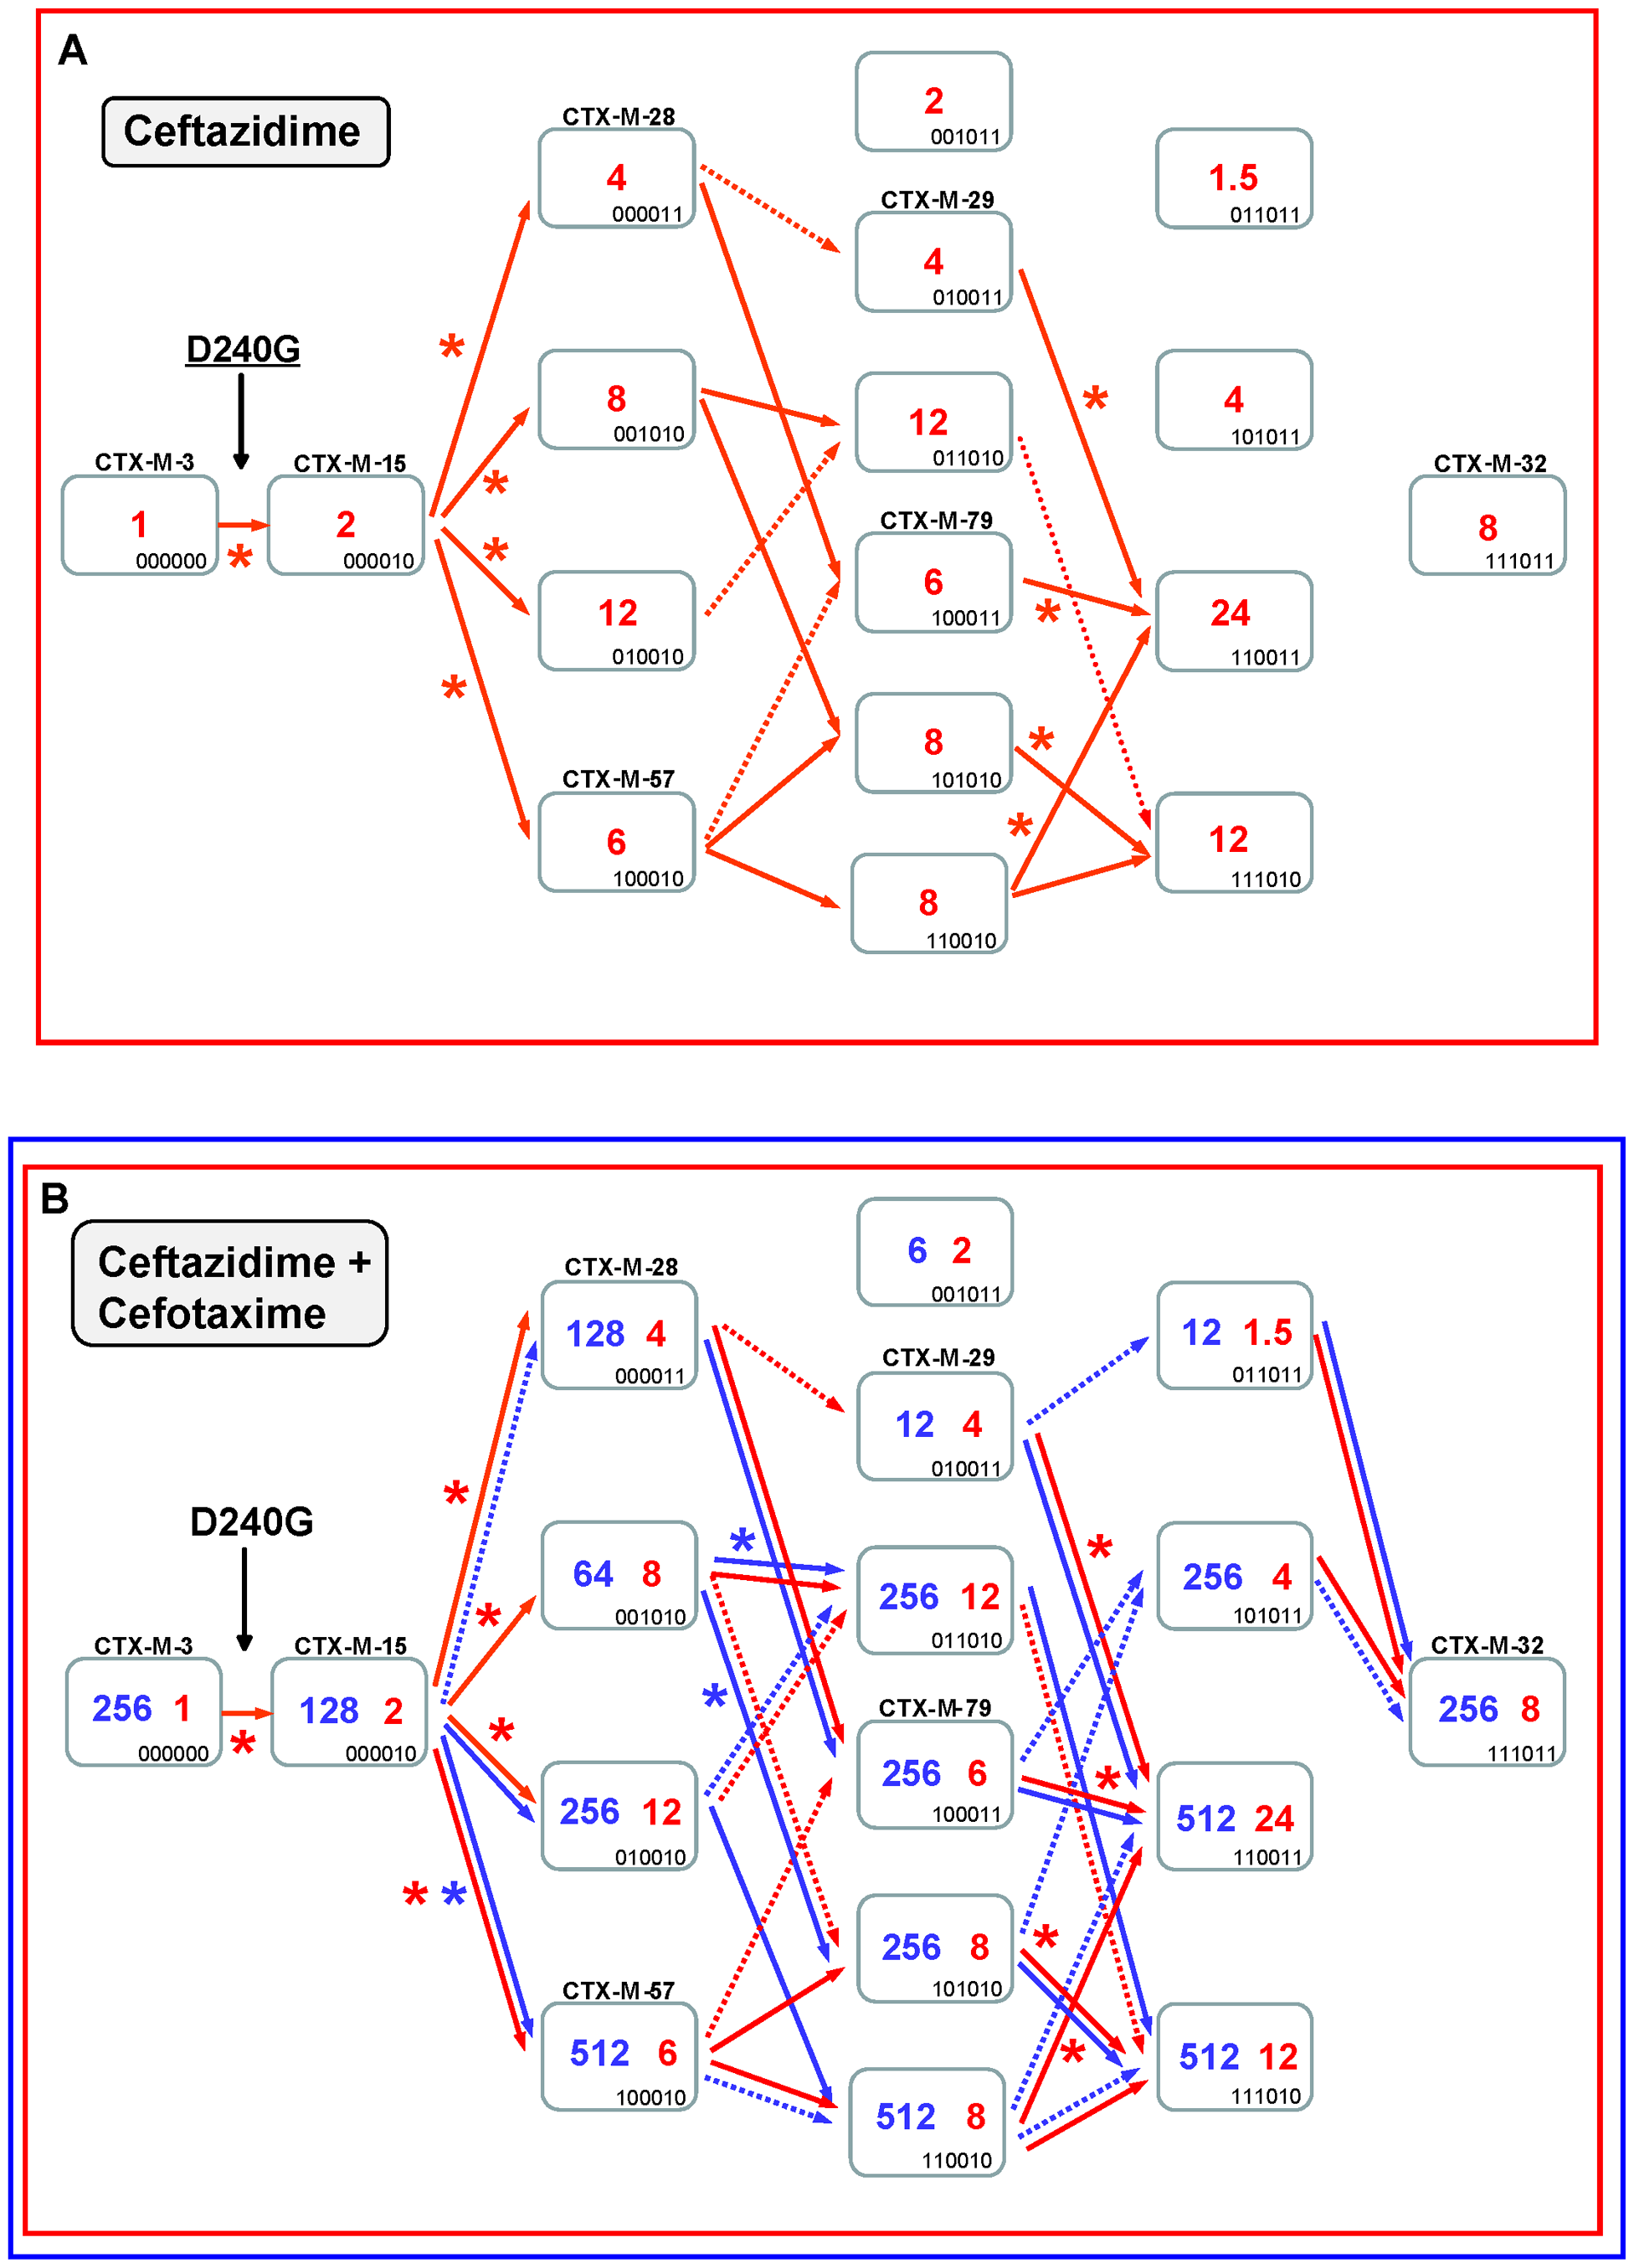 Mutational pathways showing the diversification of CTX-M-3 towards the most evolved variants, determined by step-by-step site-specific mutagenesis: the D240 pathway.